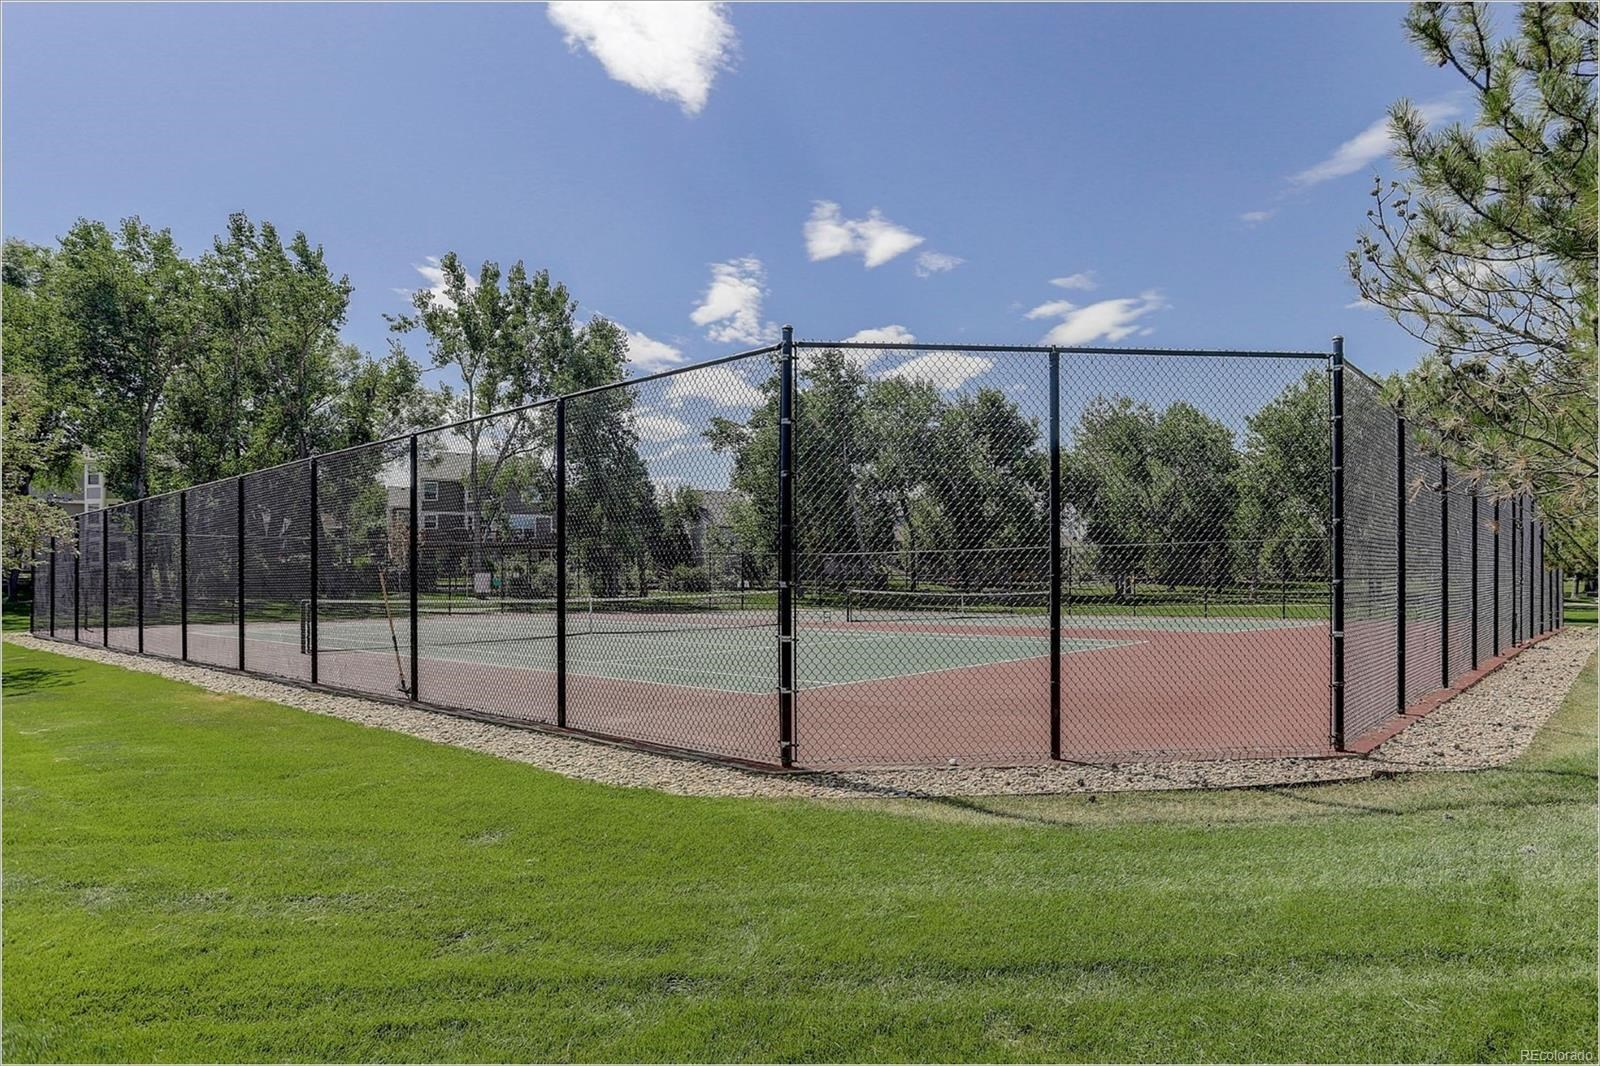 MLS# 8327774 - 39 - 806 W 127th Court, Westminster, CO 80234